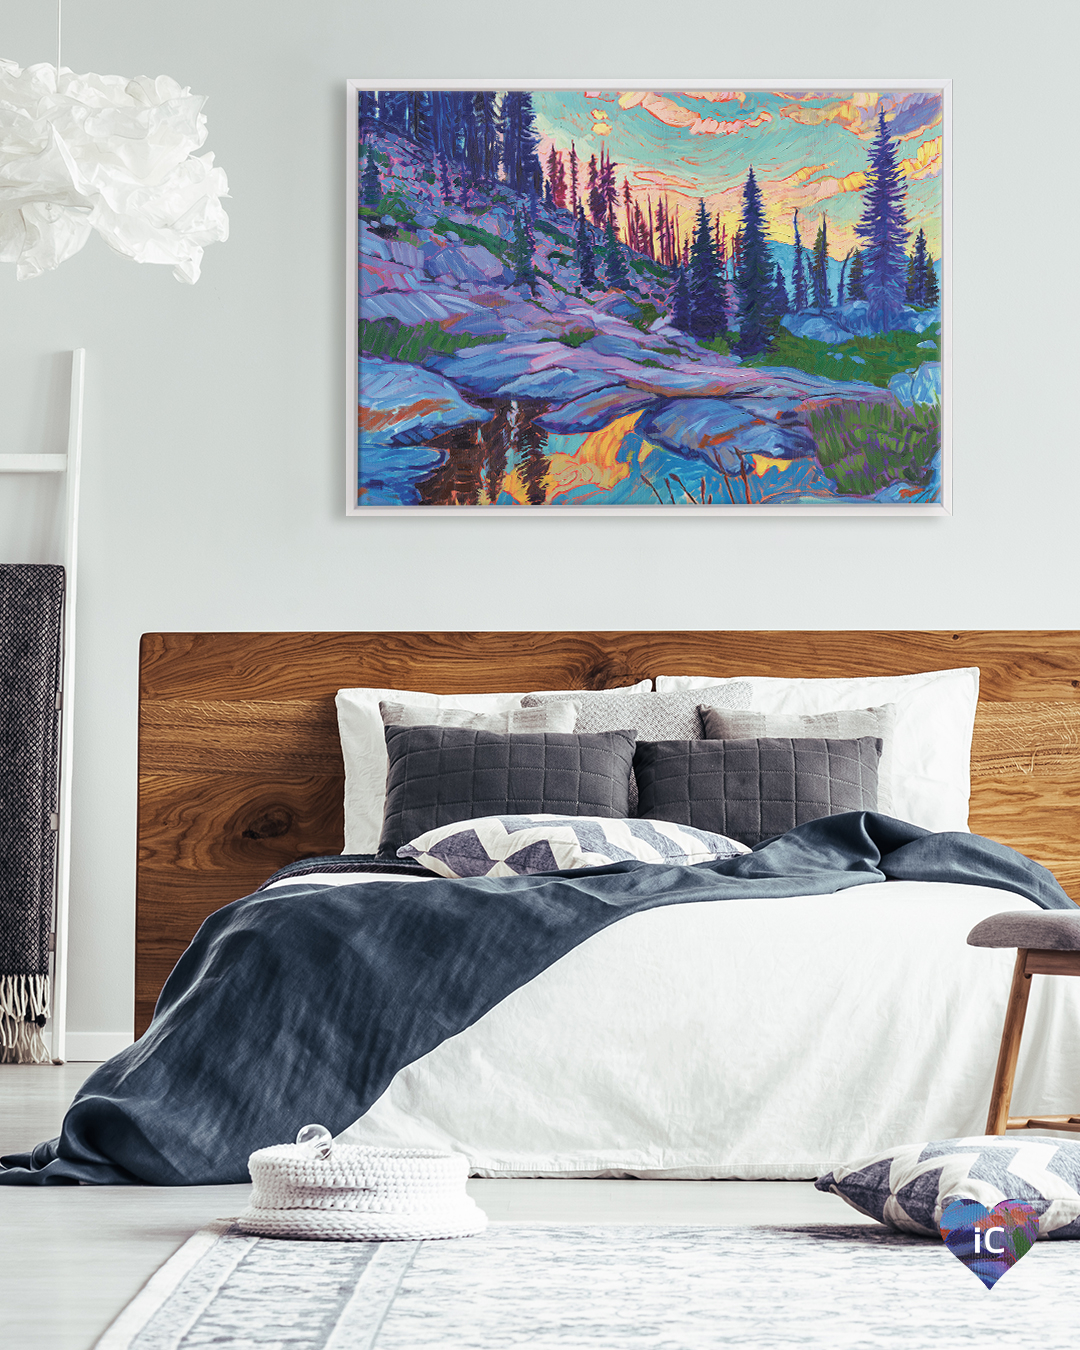 Colorful mountain landscape under sunset with tall trees framed in white in a bedroom with white bed and wood bedframe